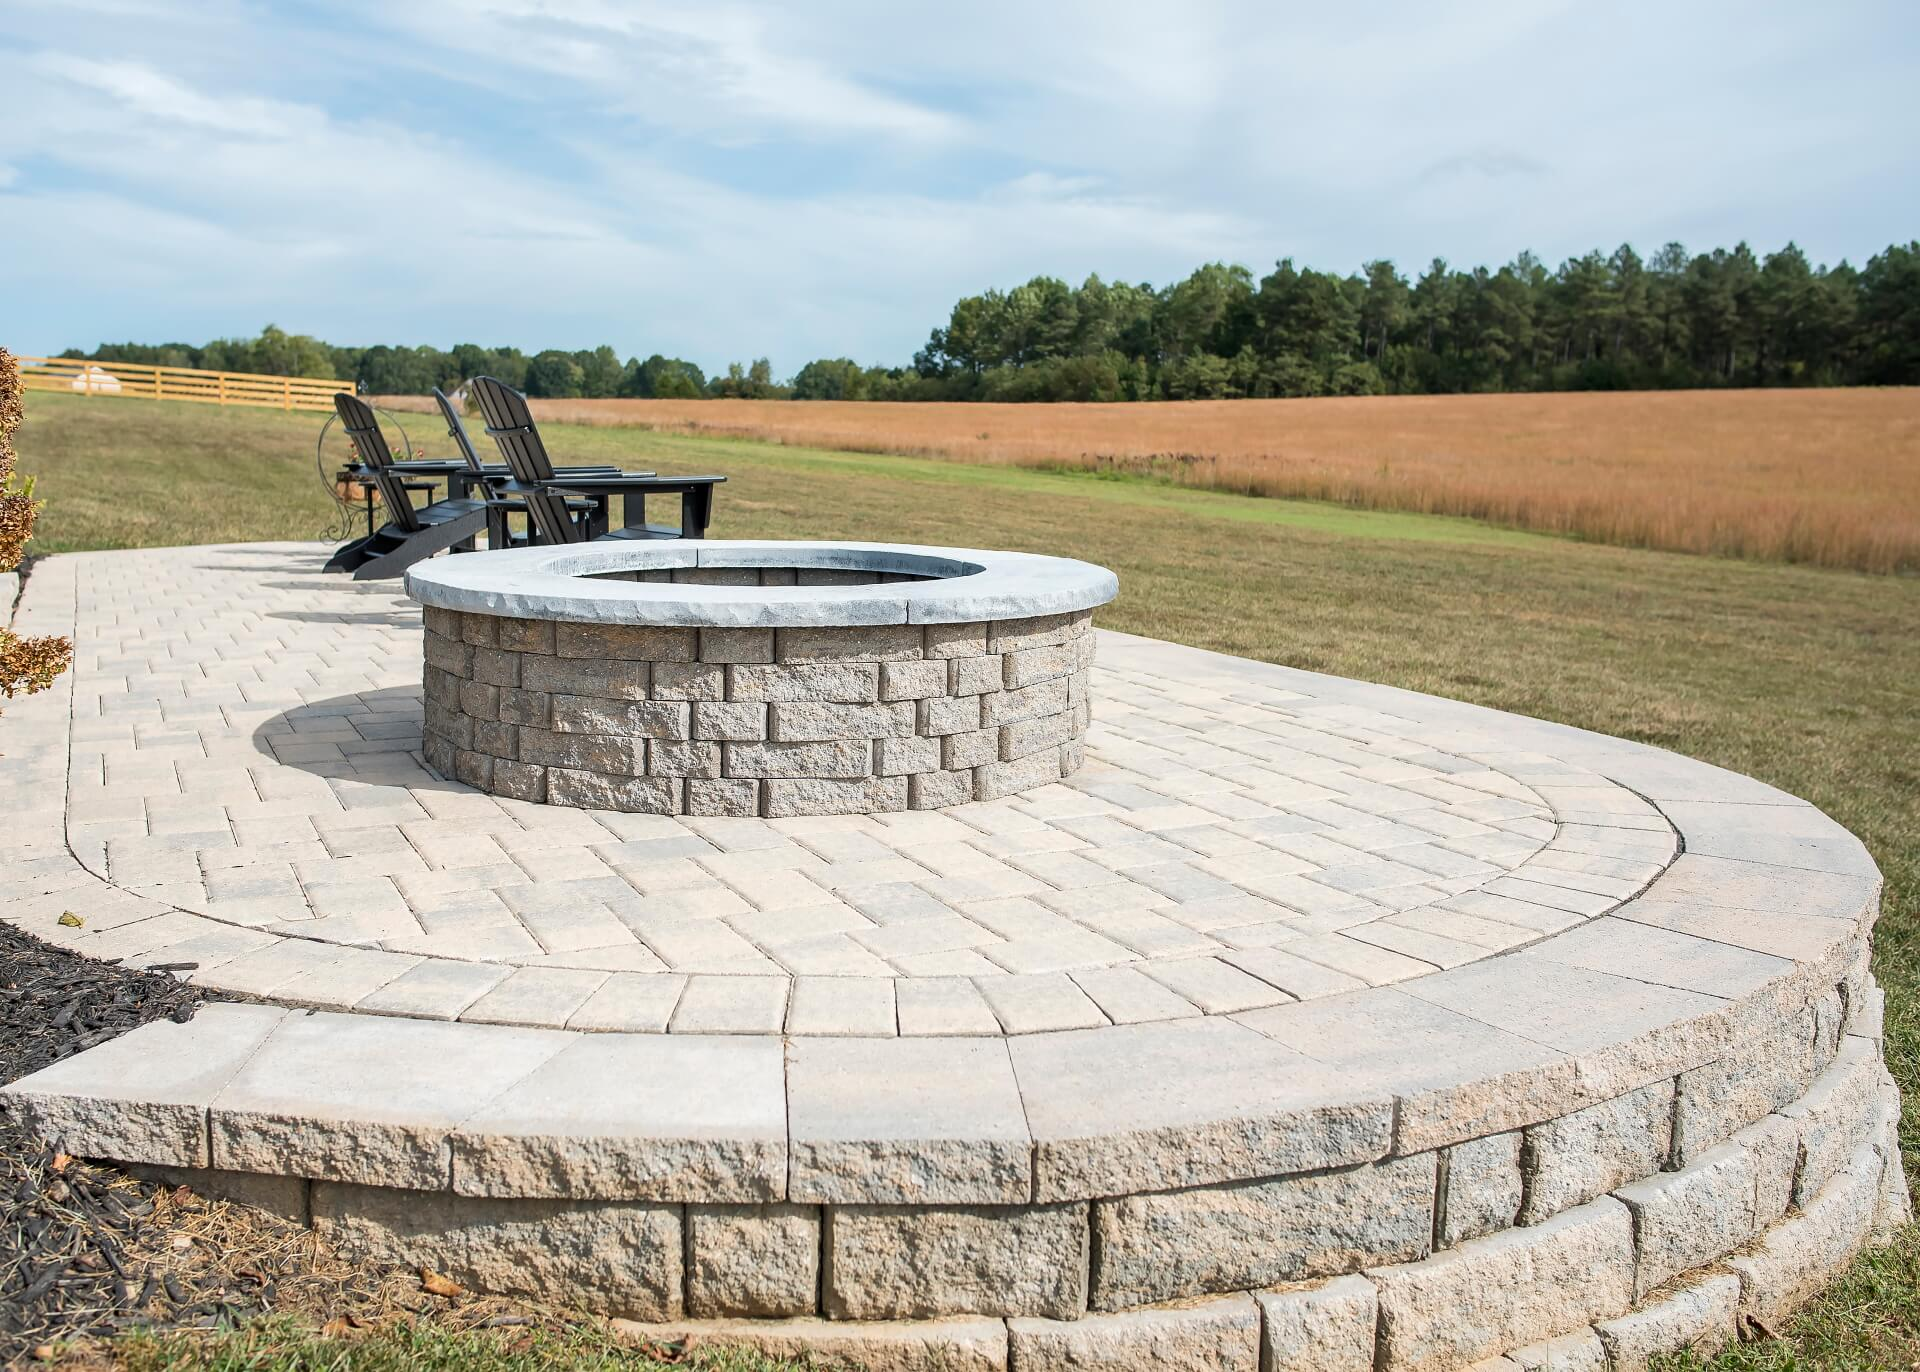 Landscape, hardscape, stone patio, pavers, outdoor living, patio, entertaining outdoors, landscape design, fire pit